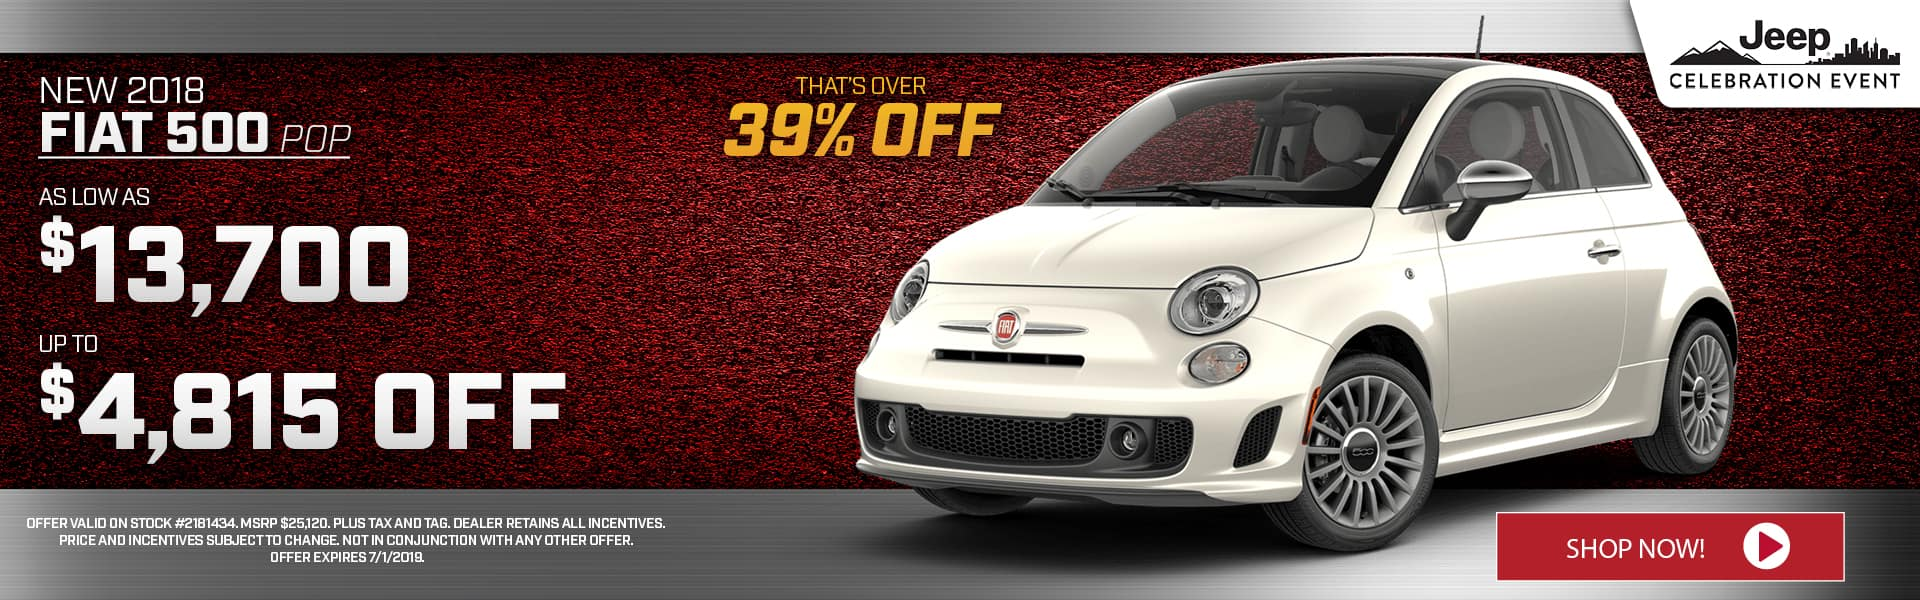 2018 FIAT 500 POP Special at Thomson FIAT in Thomson, GA